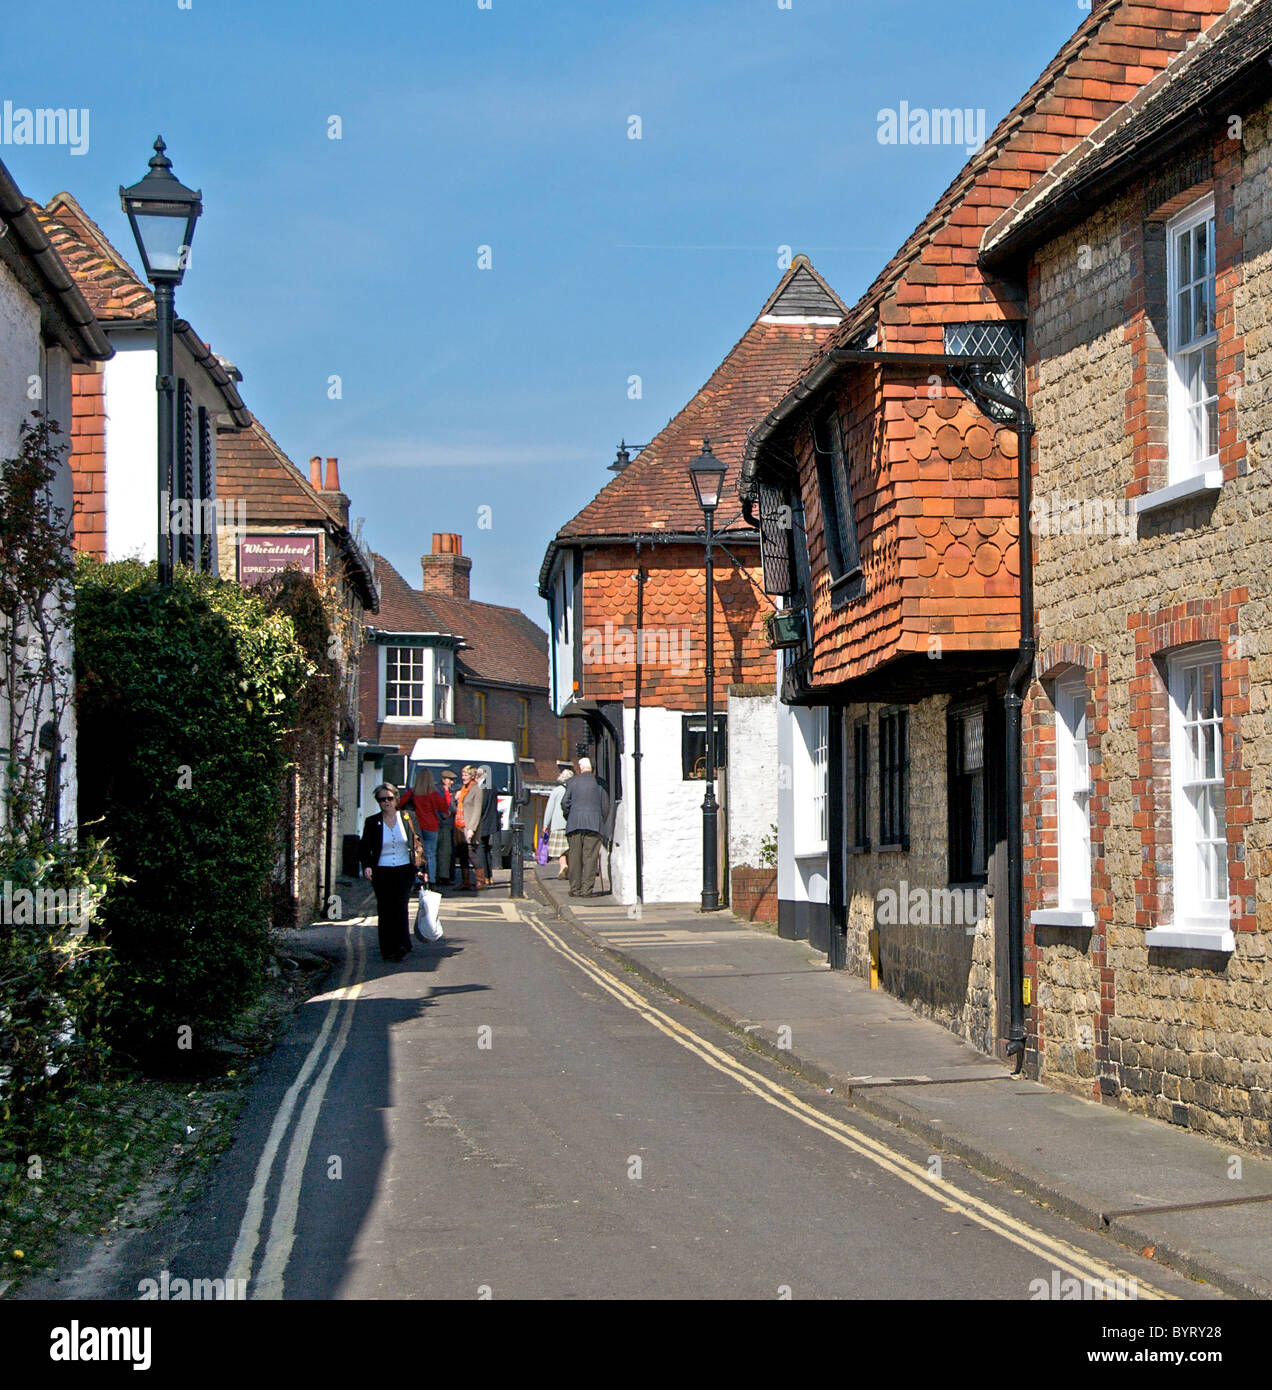 The Old Market Town Of Midhurst In West Sussex This Scene